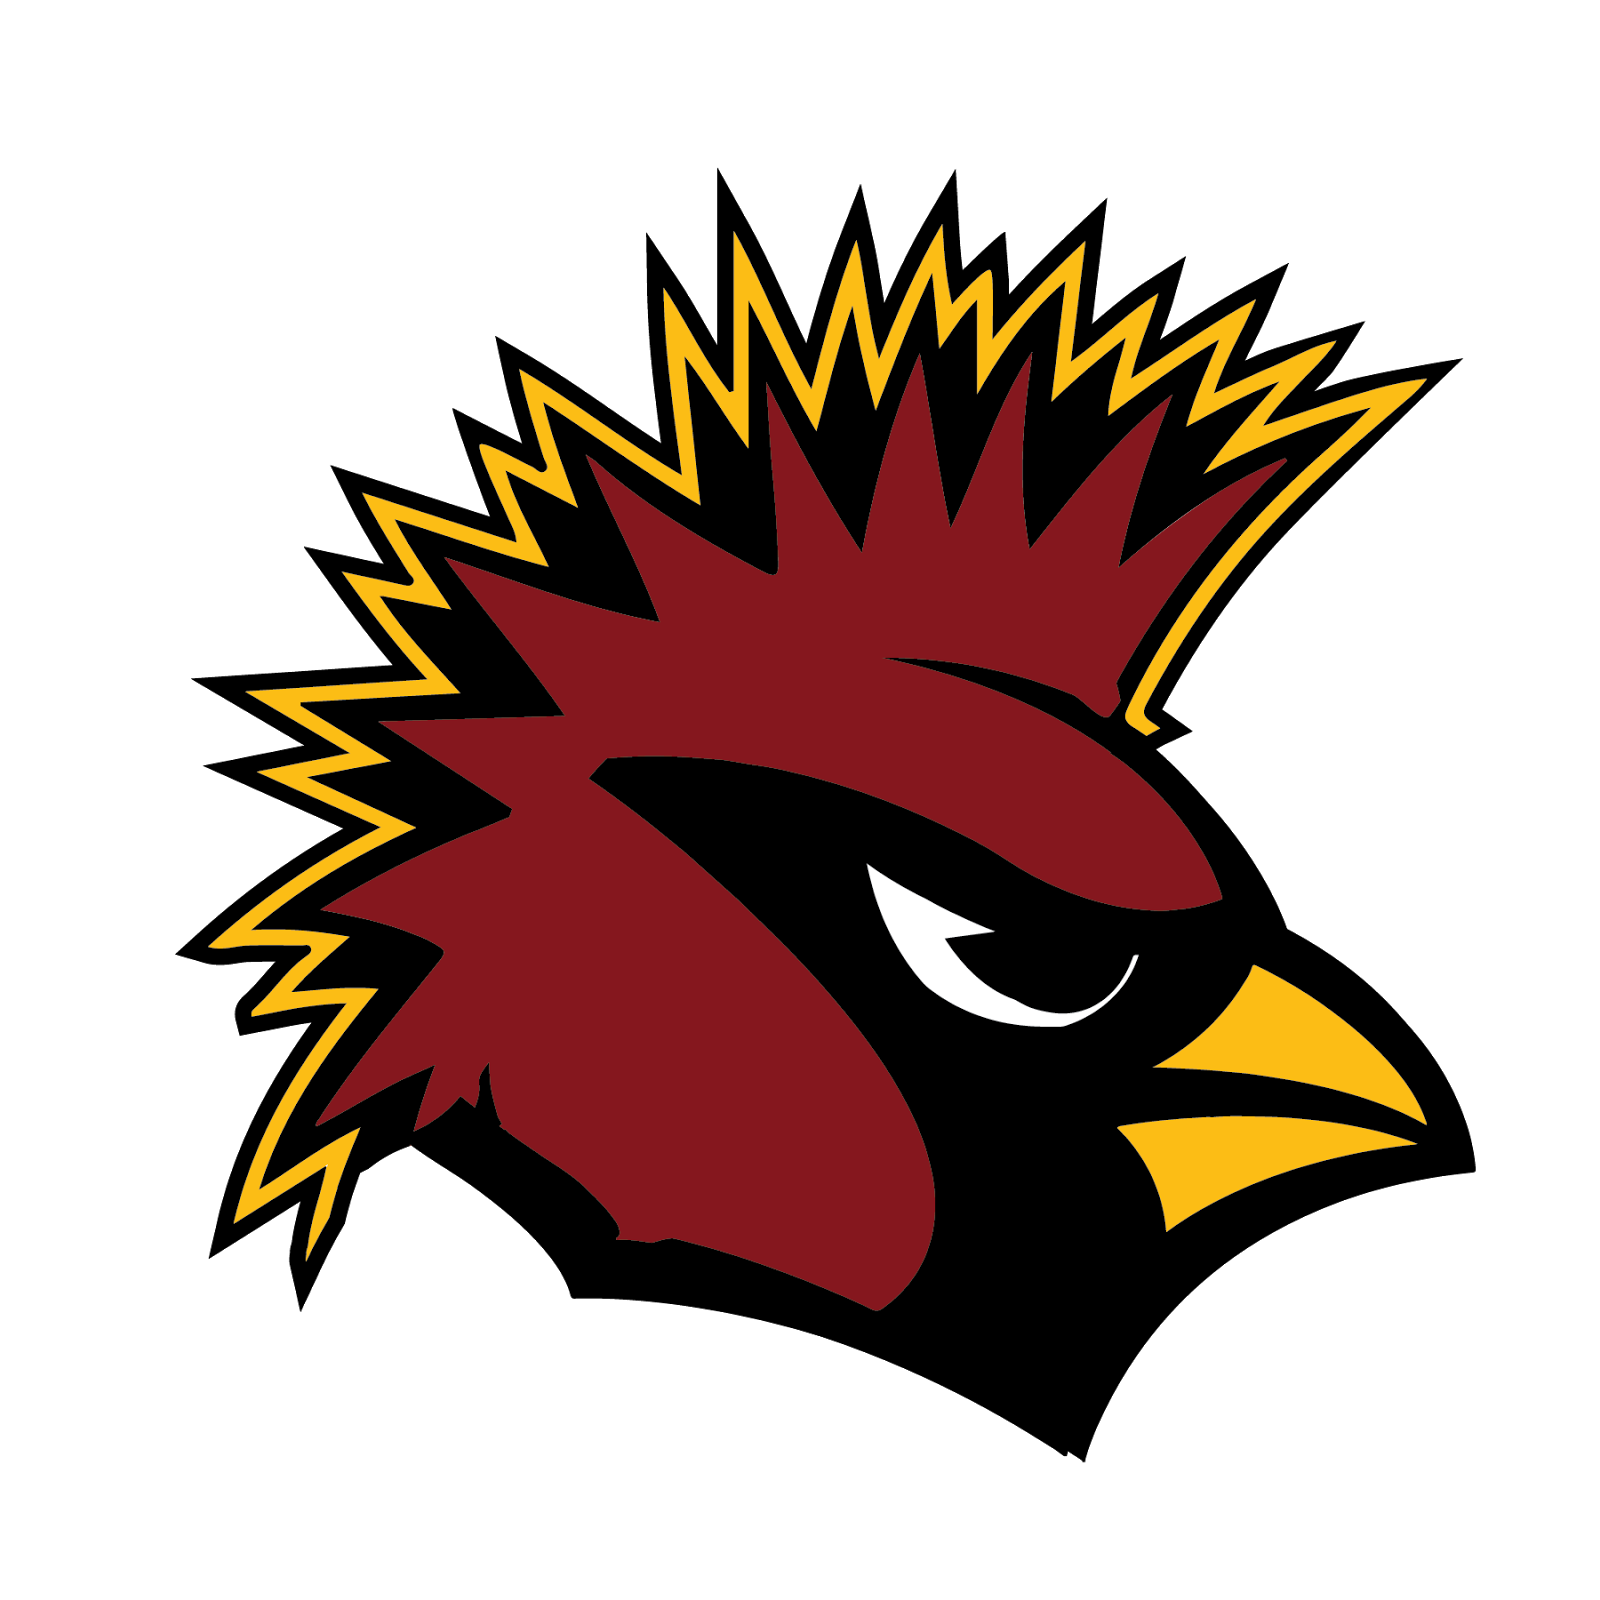 Arizona Cardinals, metal, logo, re-imagined